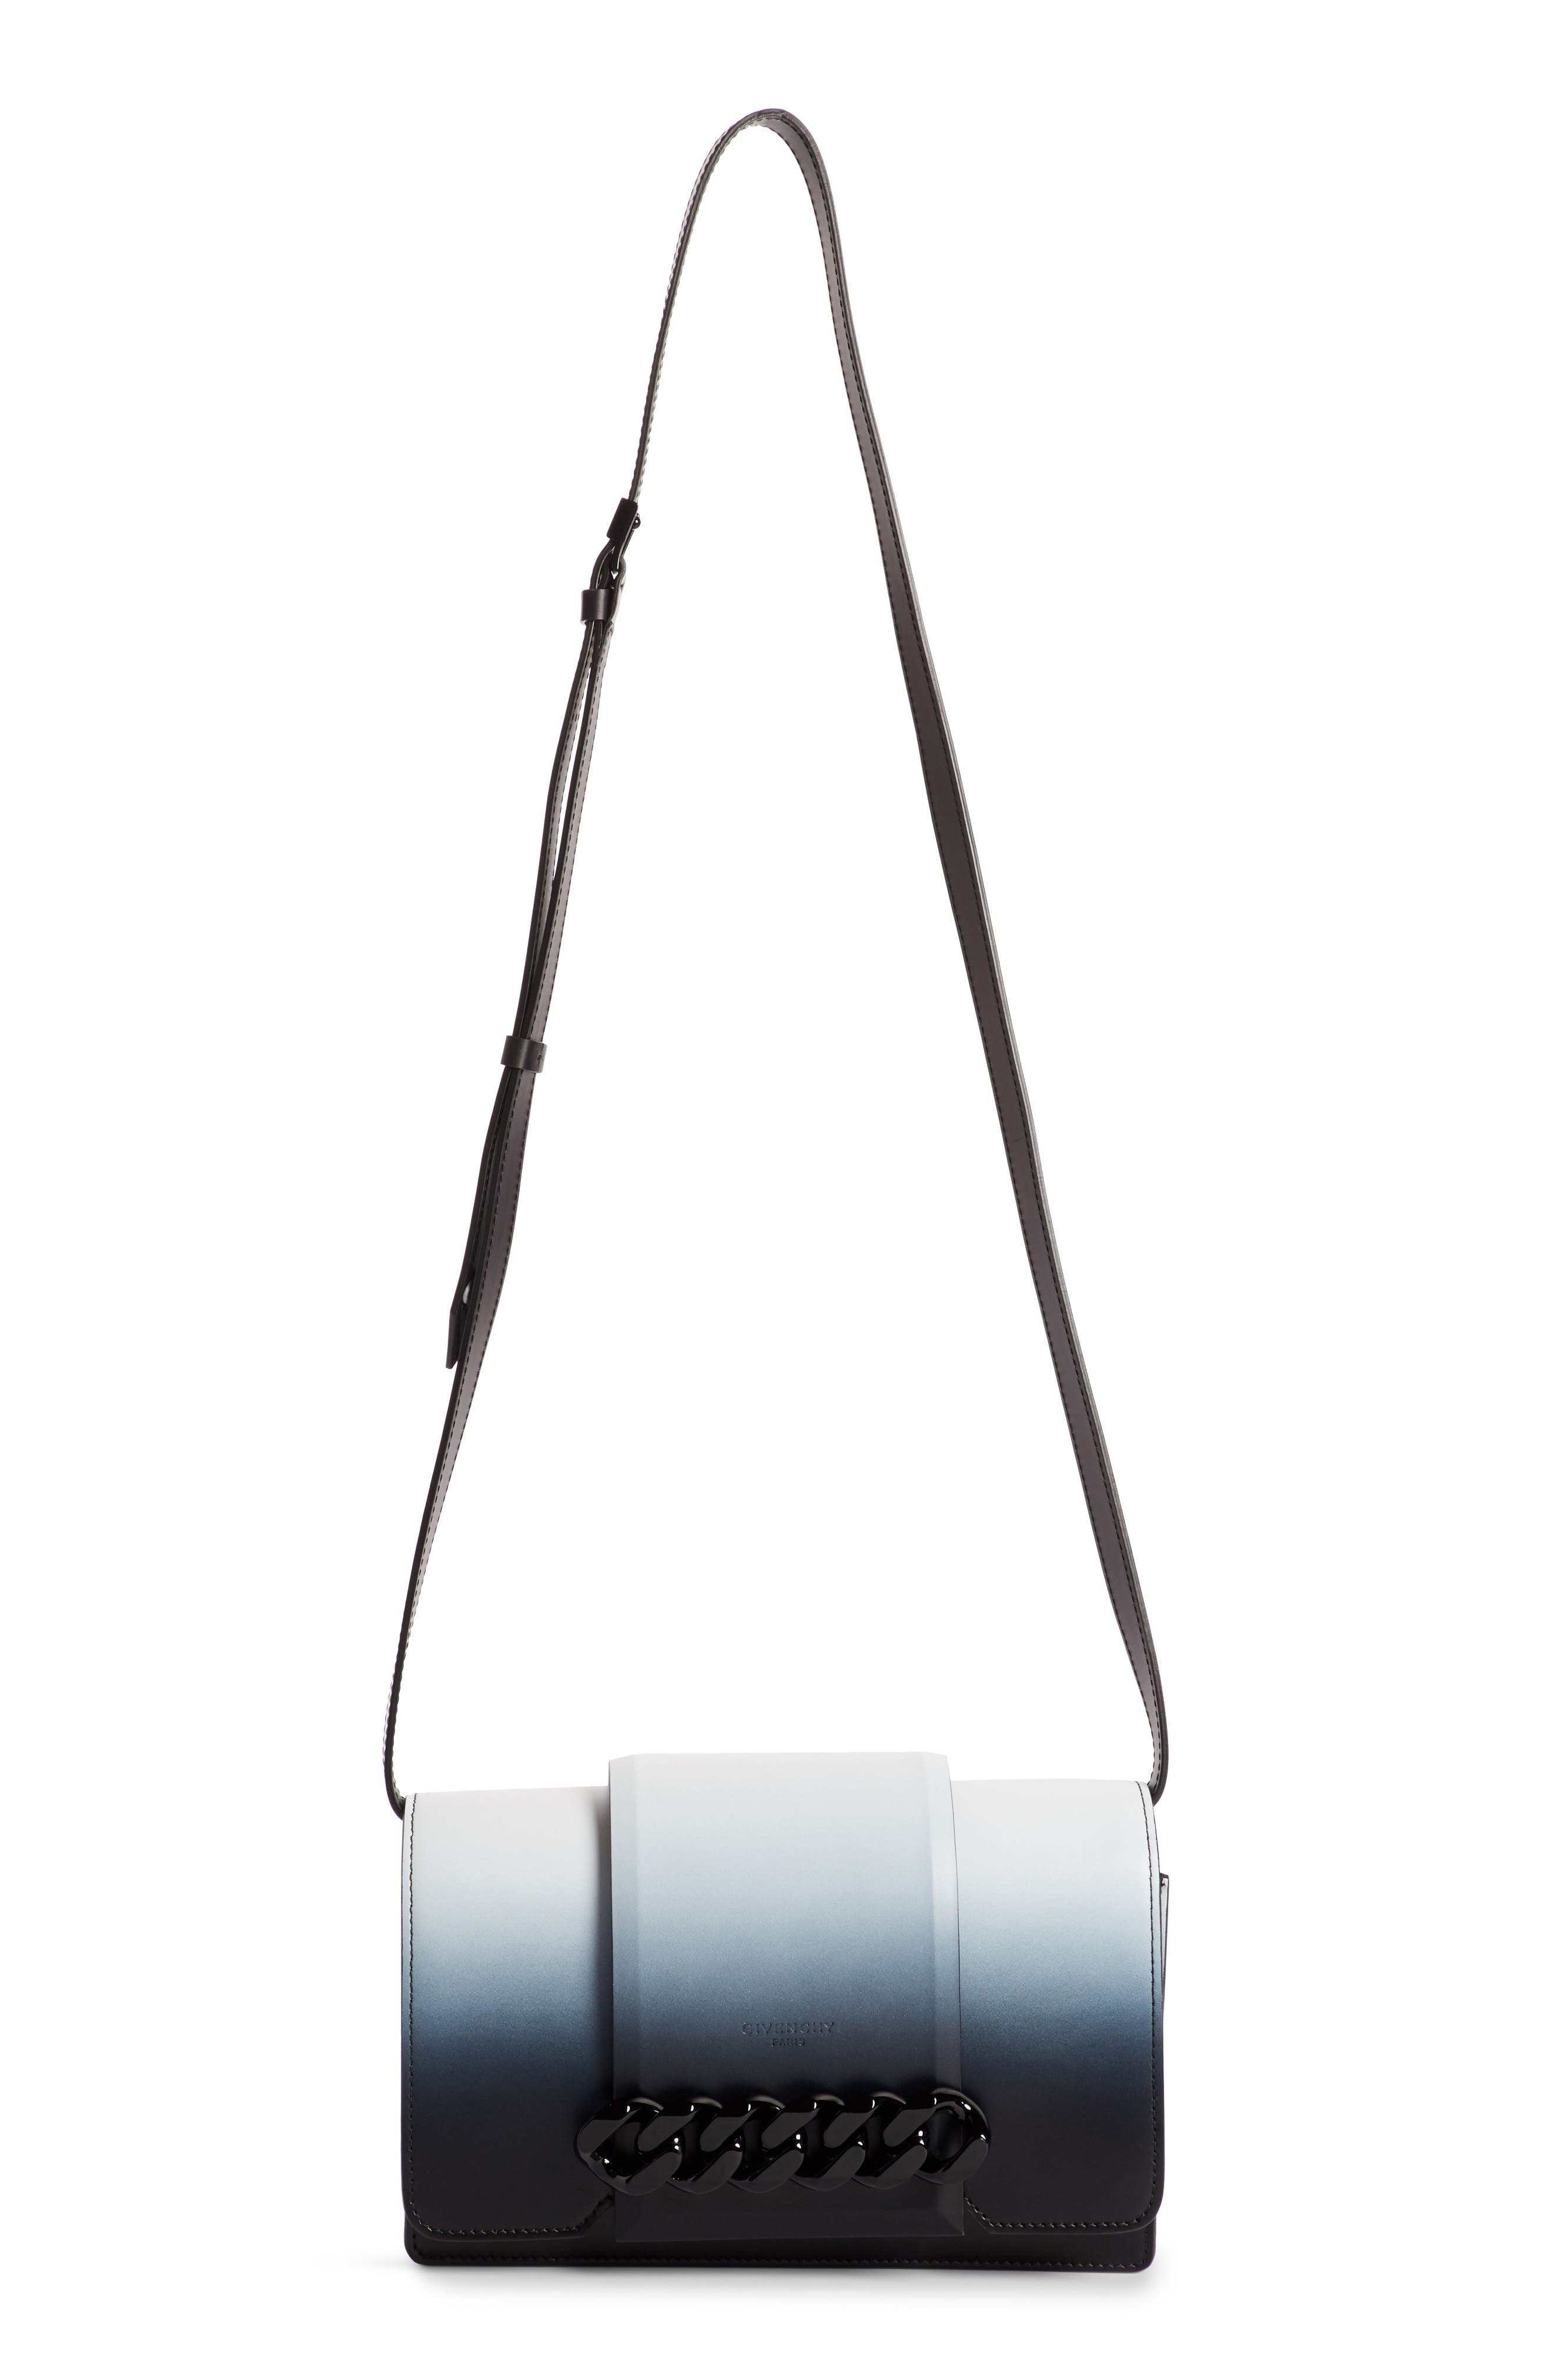 Small Infinity Dégradé Calfskin Shoulder Bag,                             Main thumbnail 1, color,                             Black/ White